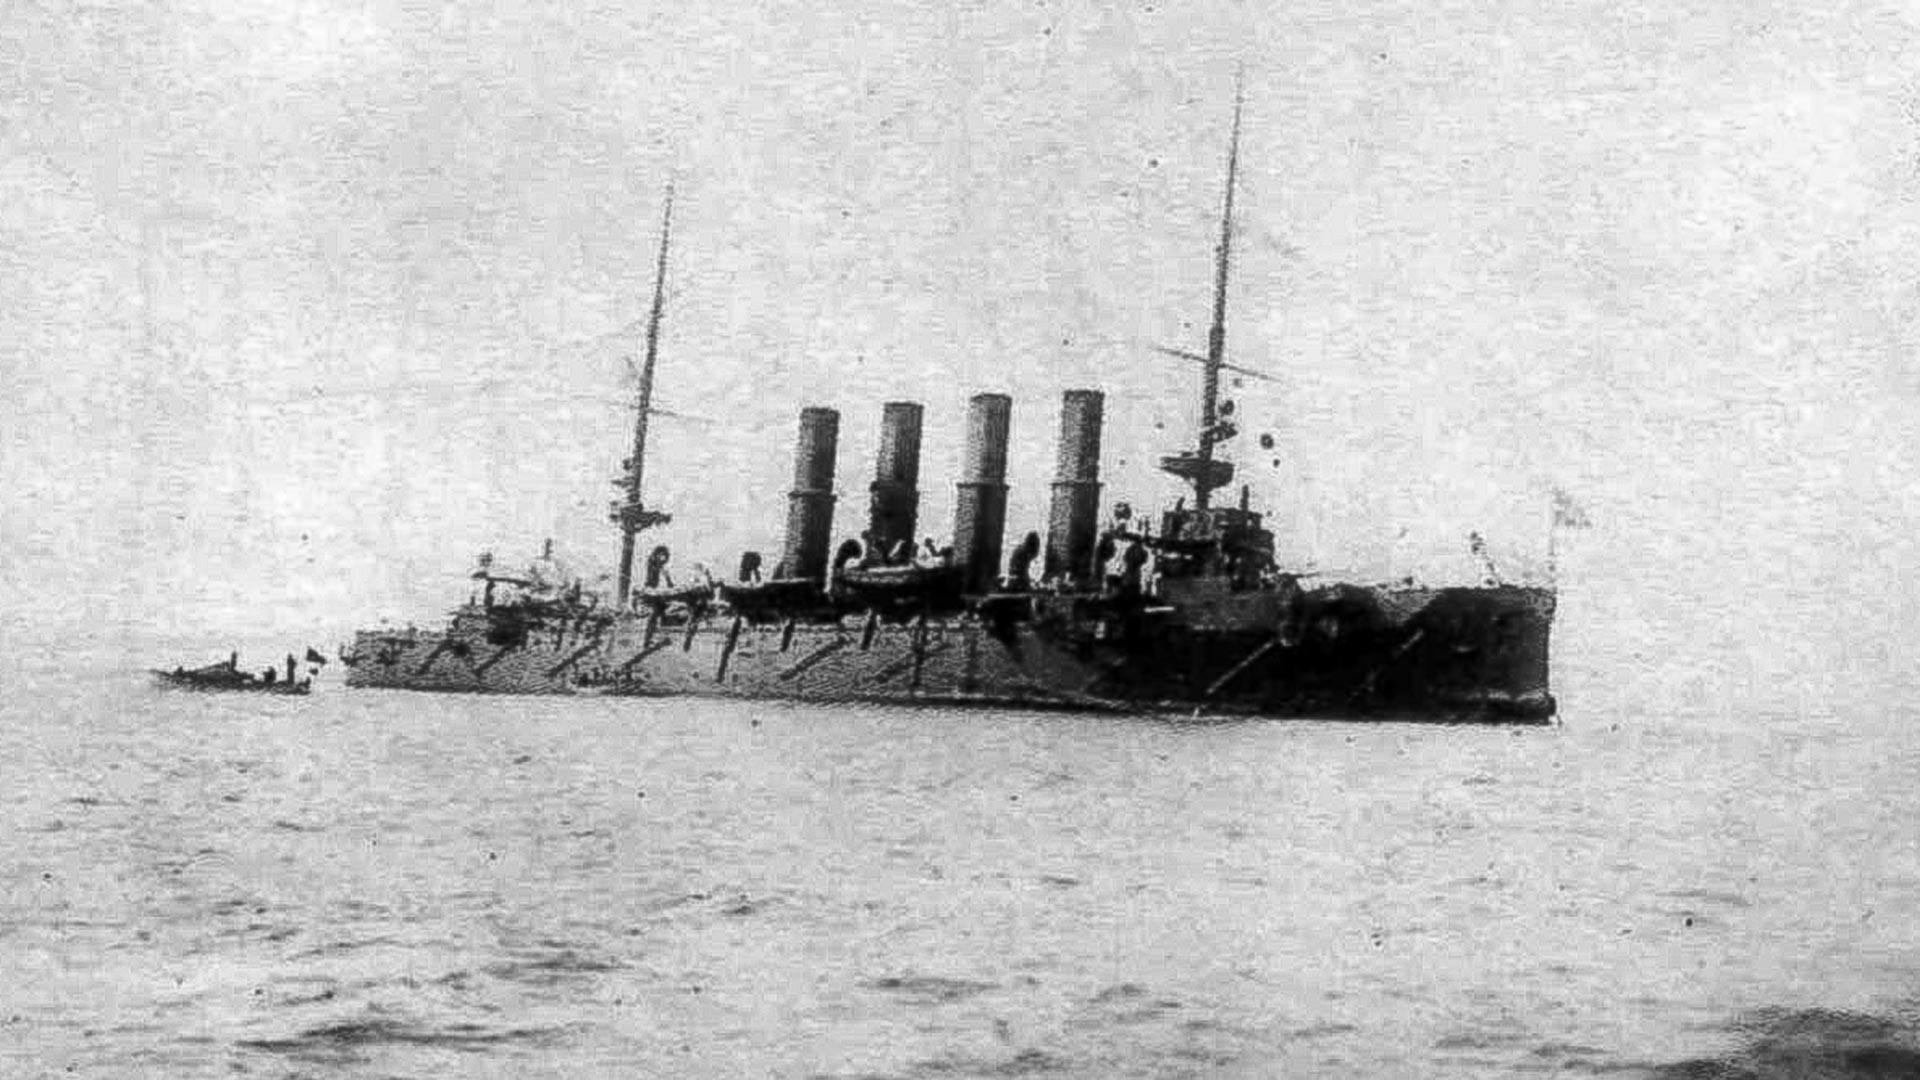 'Varyag' armored cruiser after the battle.